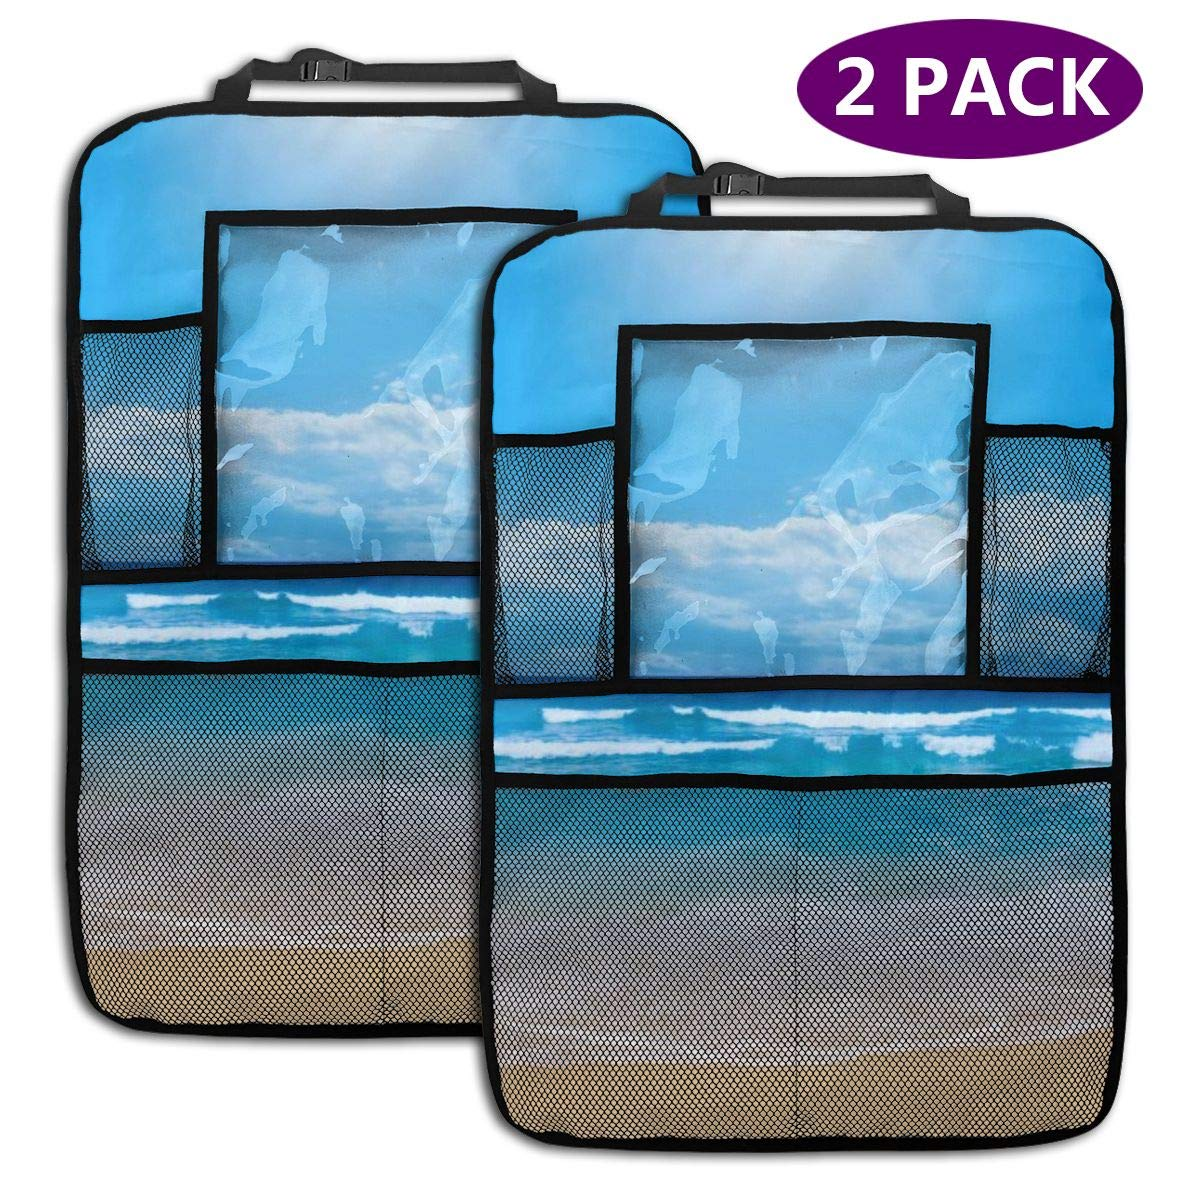 The Beach and The Cloudy Sky 2 Pack Car Seat Organizer Kick Mat Protector Durable Quality Seat Covers Protectors by LZQEEN